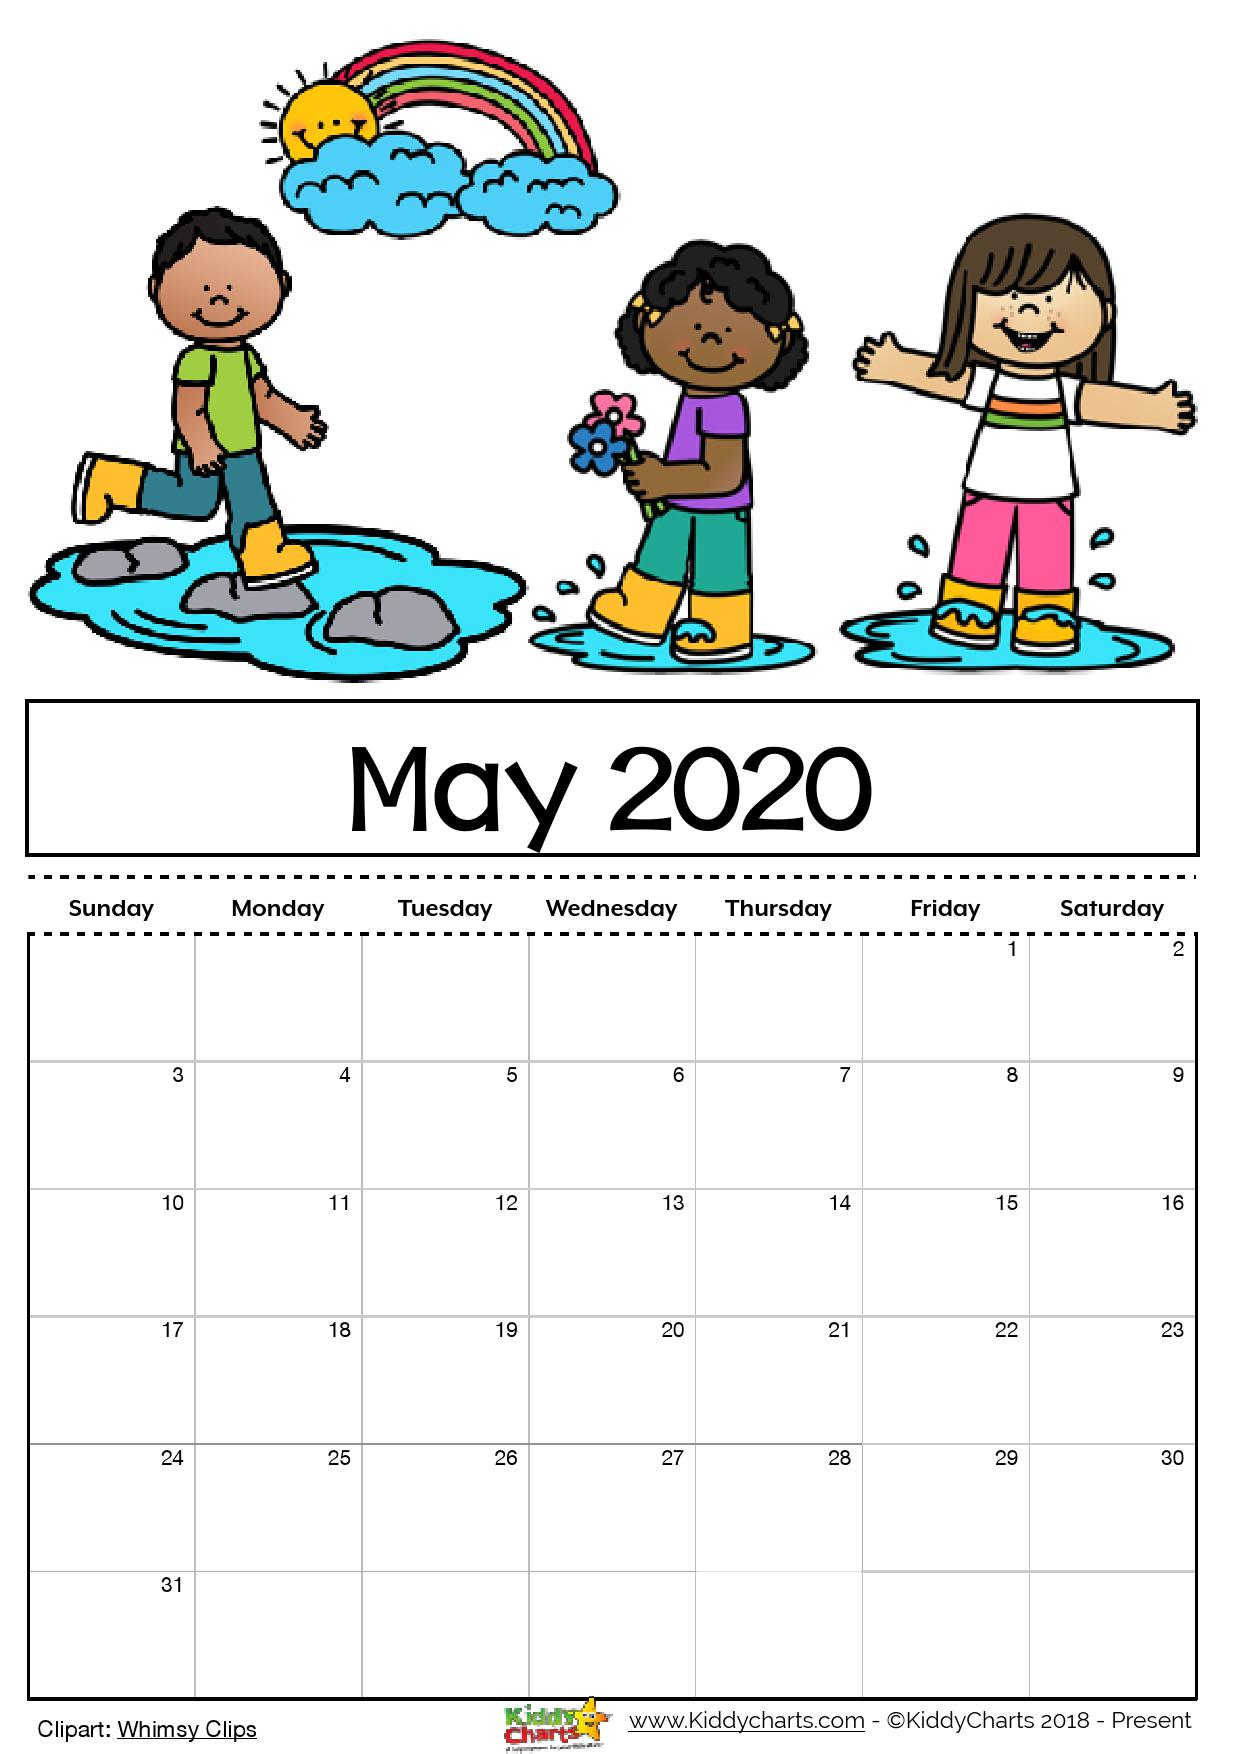 This is a graphic of Critical Free Printable Calendars for 2020